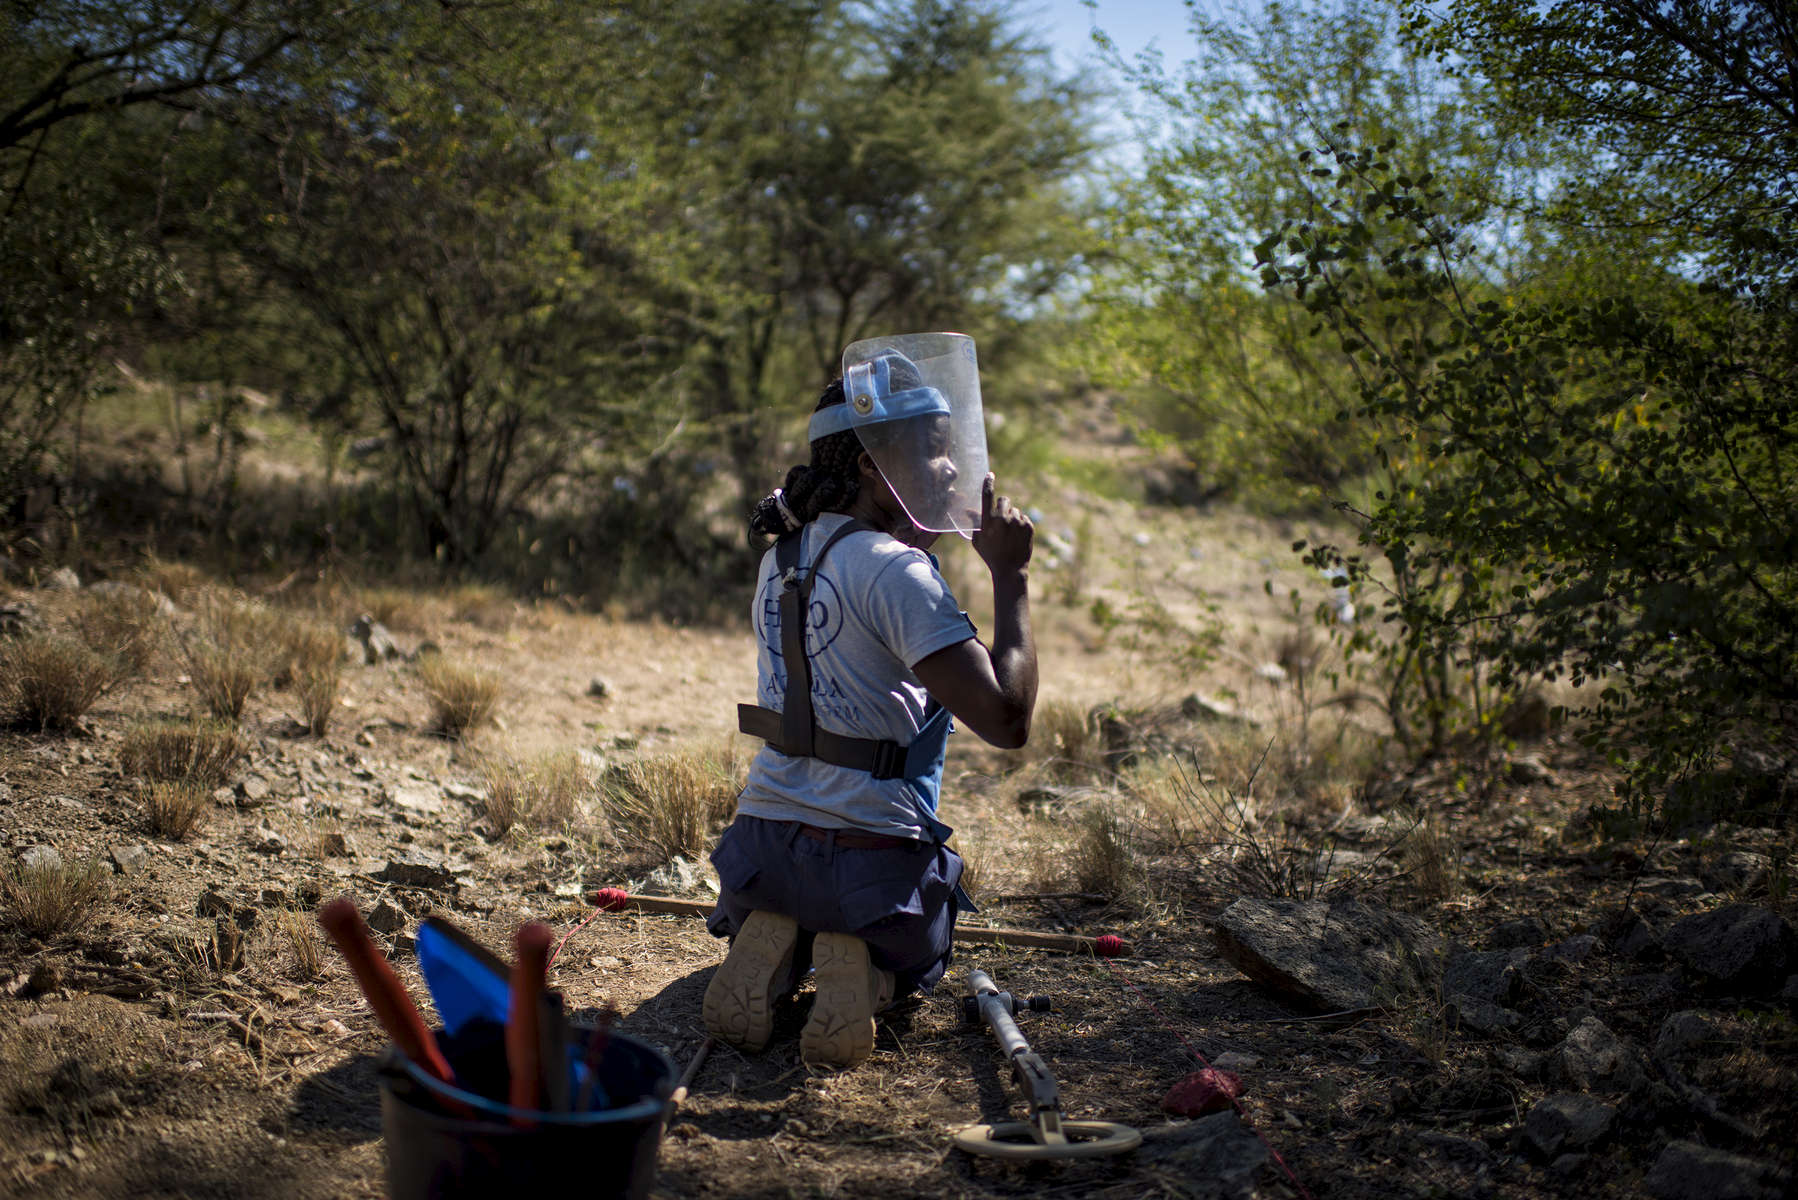 May 3, 2018: KANENGUERERE, ANGOLA - HALO deminer Avelina Cassingue checks her lane for anti-personnel mines in Kanenguerere.  The area was mined during the civil war by government forces to protect the nearby railway line, as well as various troop positions.